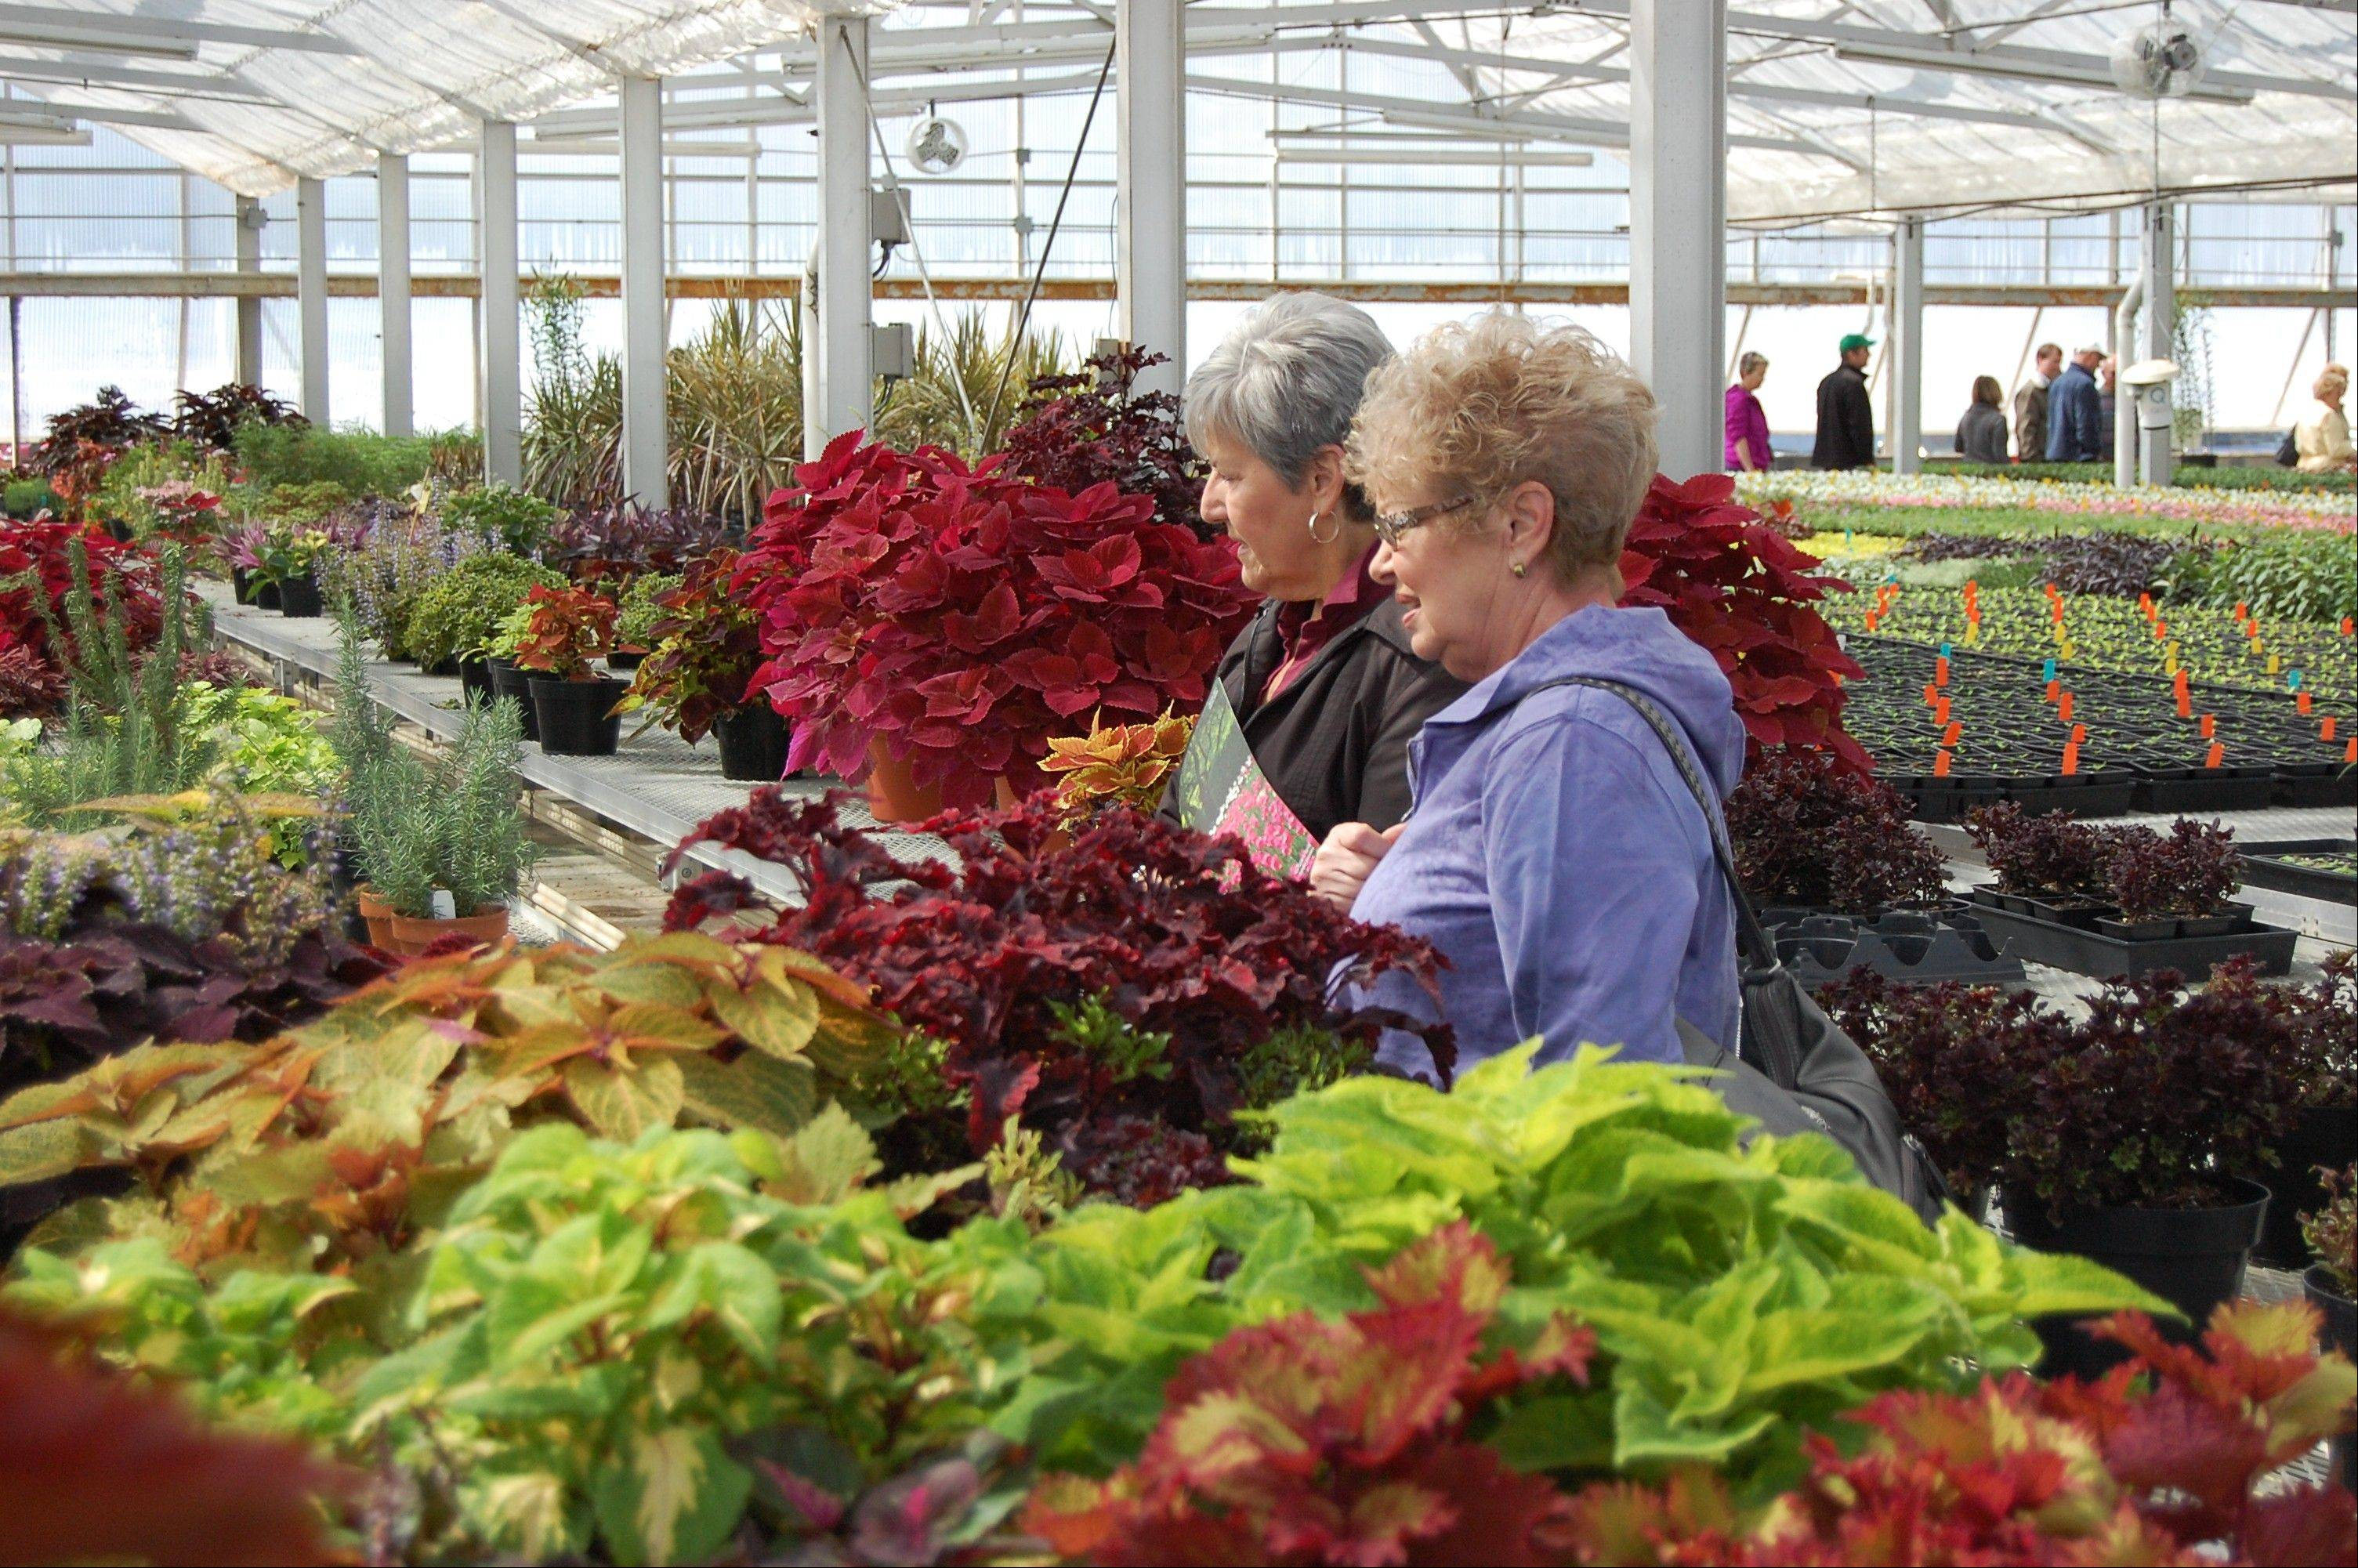 Tour the 18,000-square-foot greenhouse during the Cantigny Greenhouse Open House event at Cantigny Park in Wheaton on Sunday, May 5.